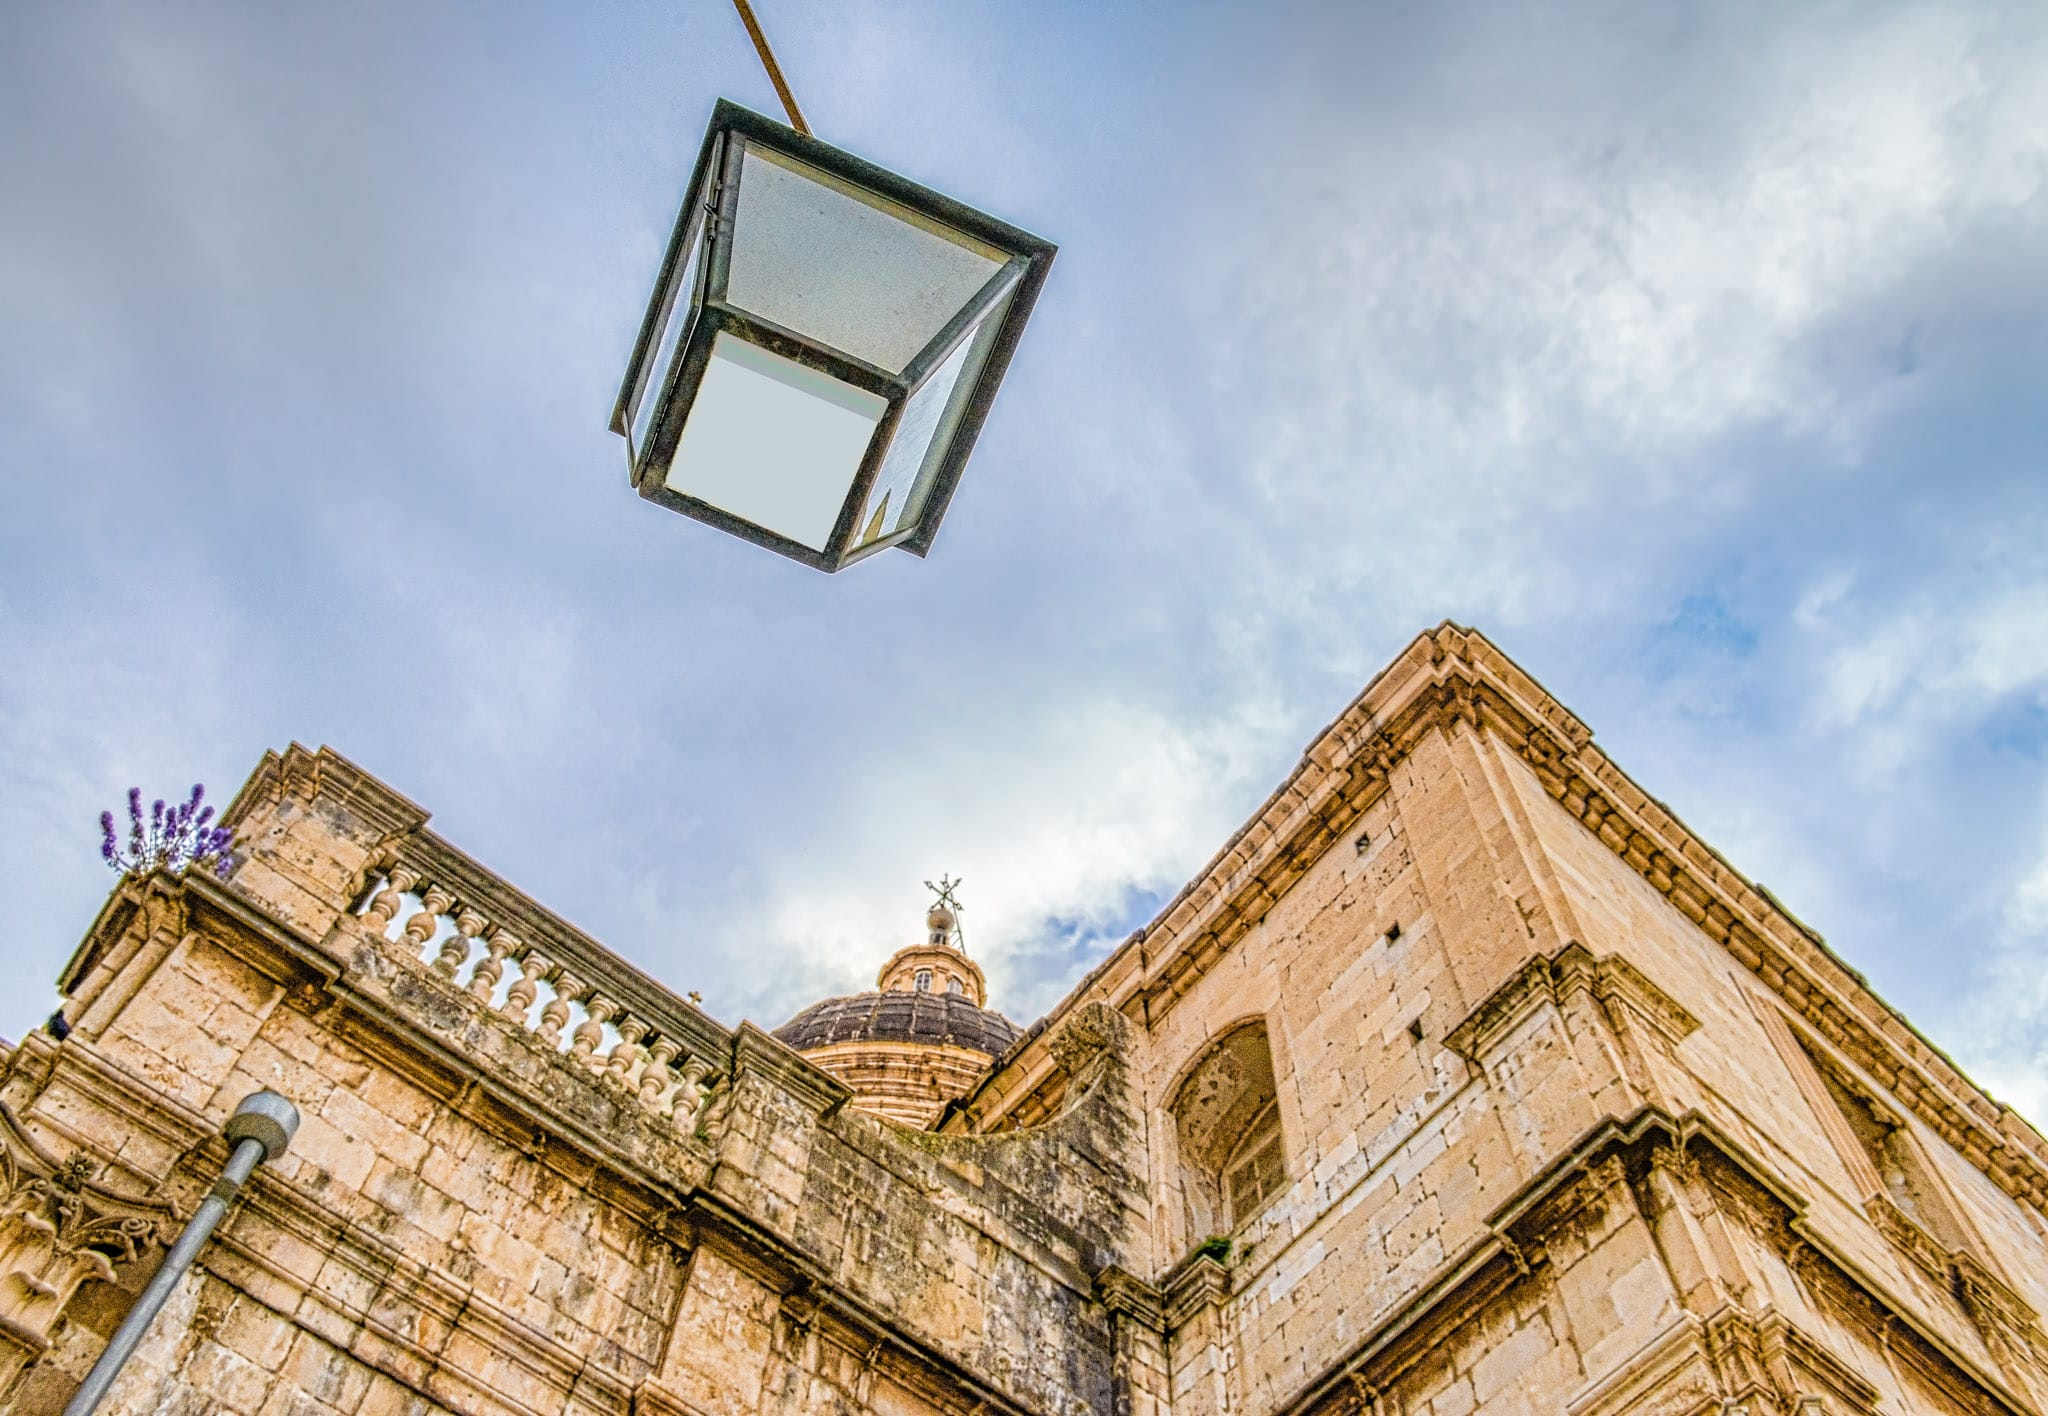 Looking up at Dubrovnik Cathedral from street level in Dubrovnik Old Town in Croatia.